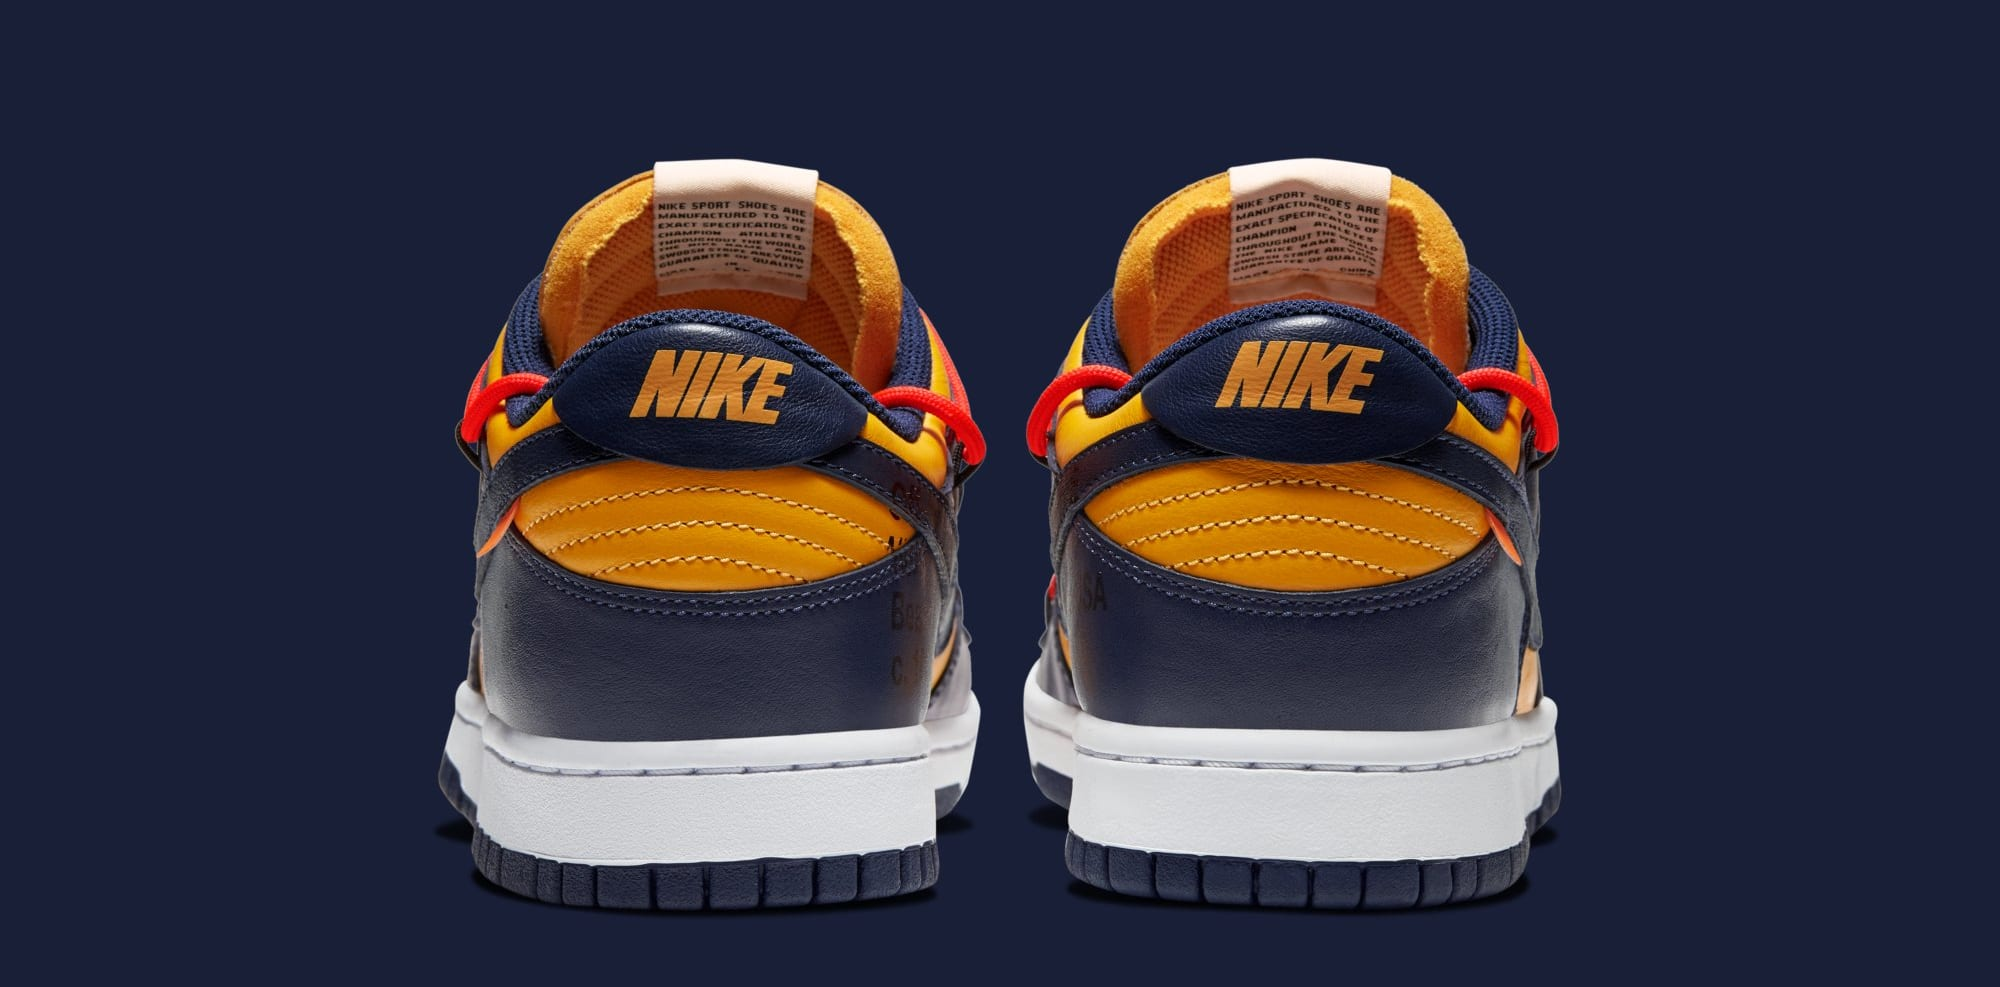 Off-White x Nike Dunk Low 'University Gold/White/Midnight Navy' CT0856-700 (Heel)